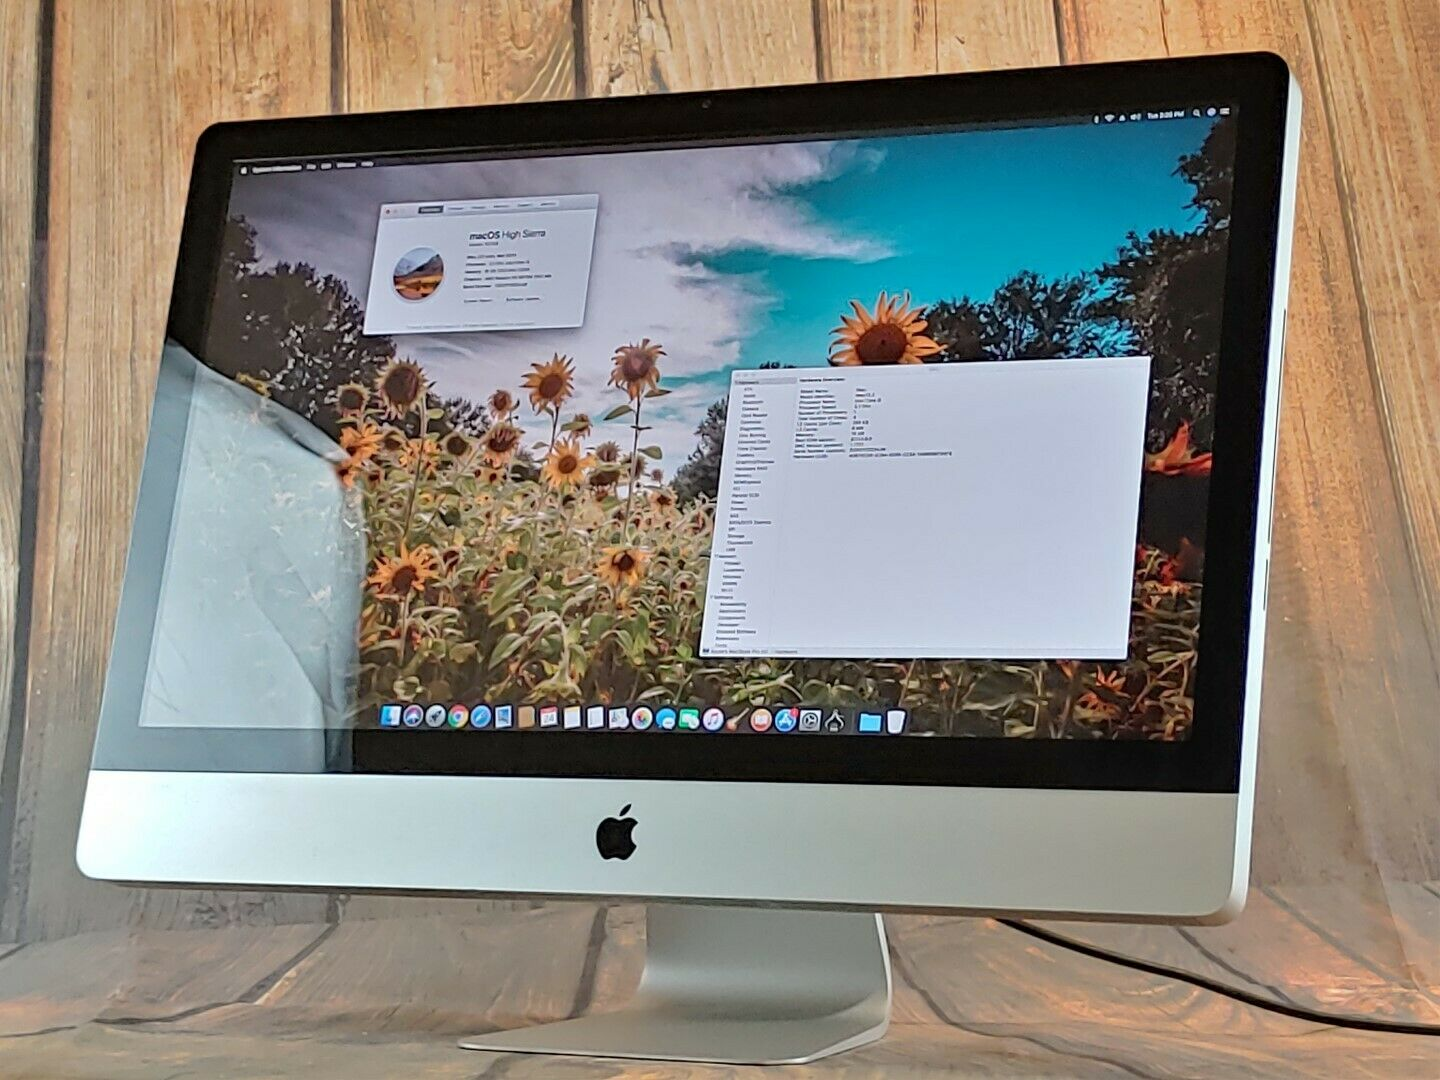 Apple iMac 27-inch (2011) Intel Core i5 3.1GHz + 16GB + 1TB [ MC814LL/A ]. Buy it now for 428.39